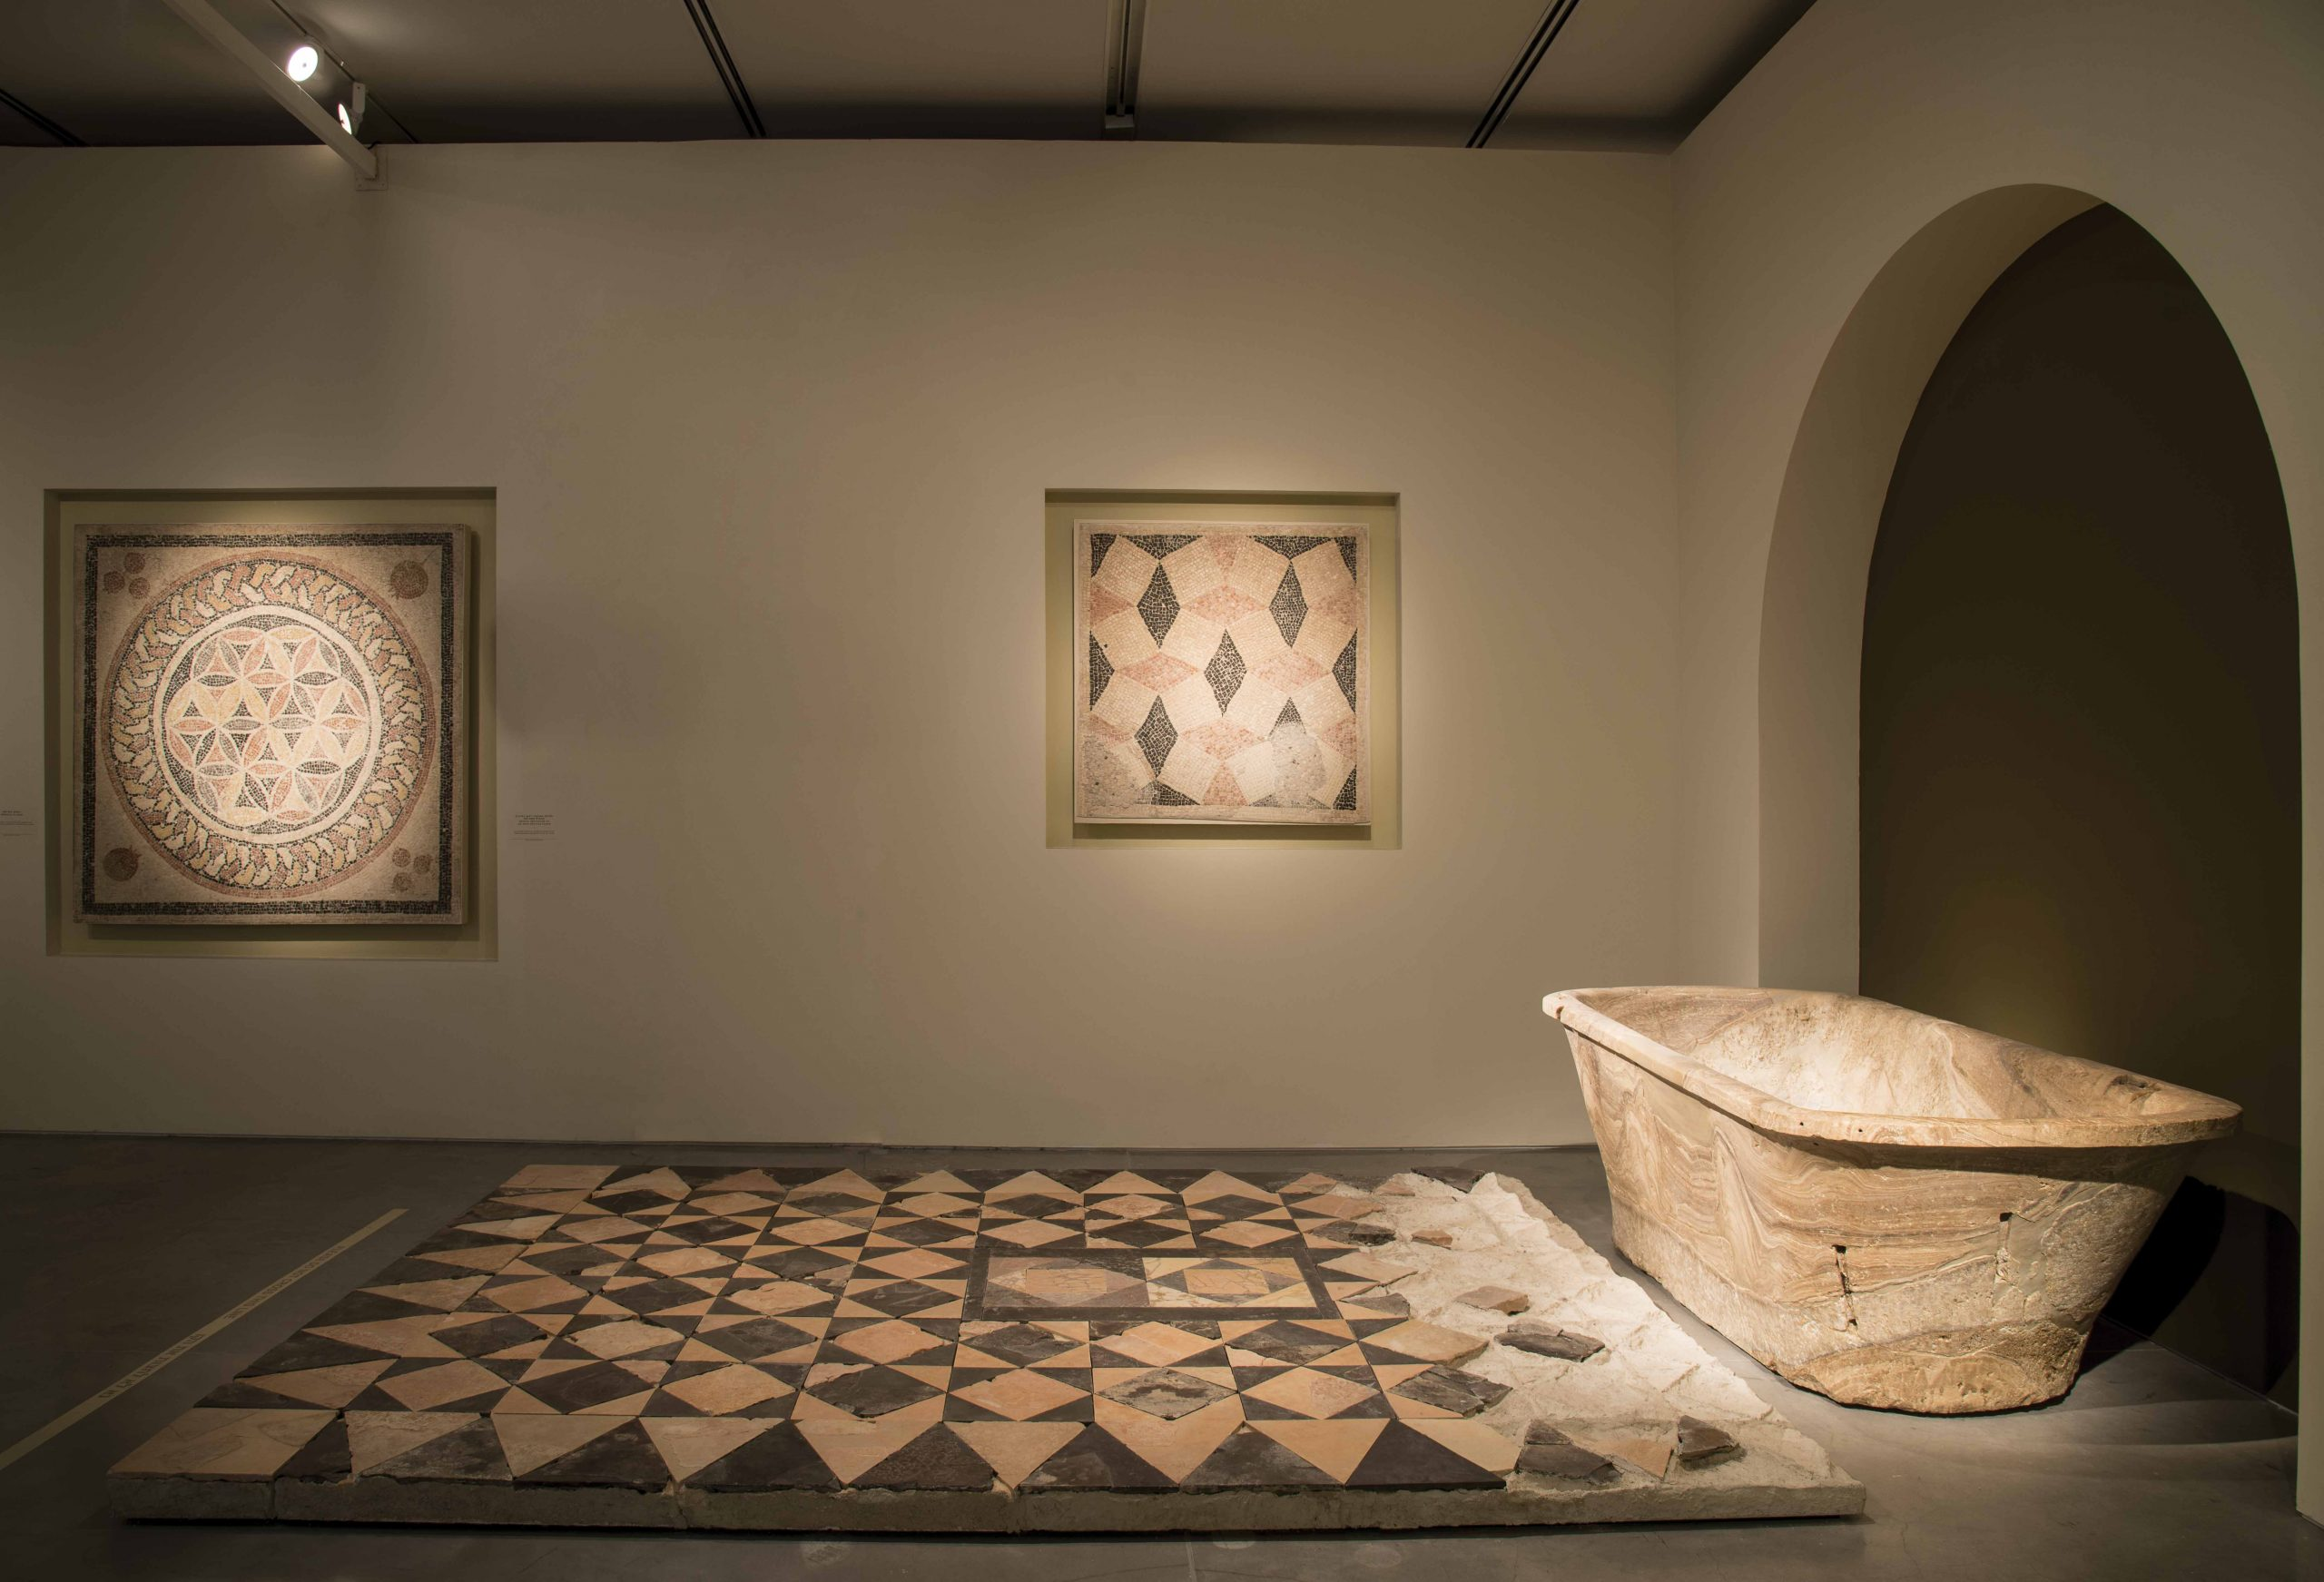 Herod the Great: The King's Final Journey, a 2013 exhibition at the Israel Museum, showcased the monumentality and opulence of Herod's building projects, including this reconstruction of an opus sectile floor